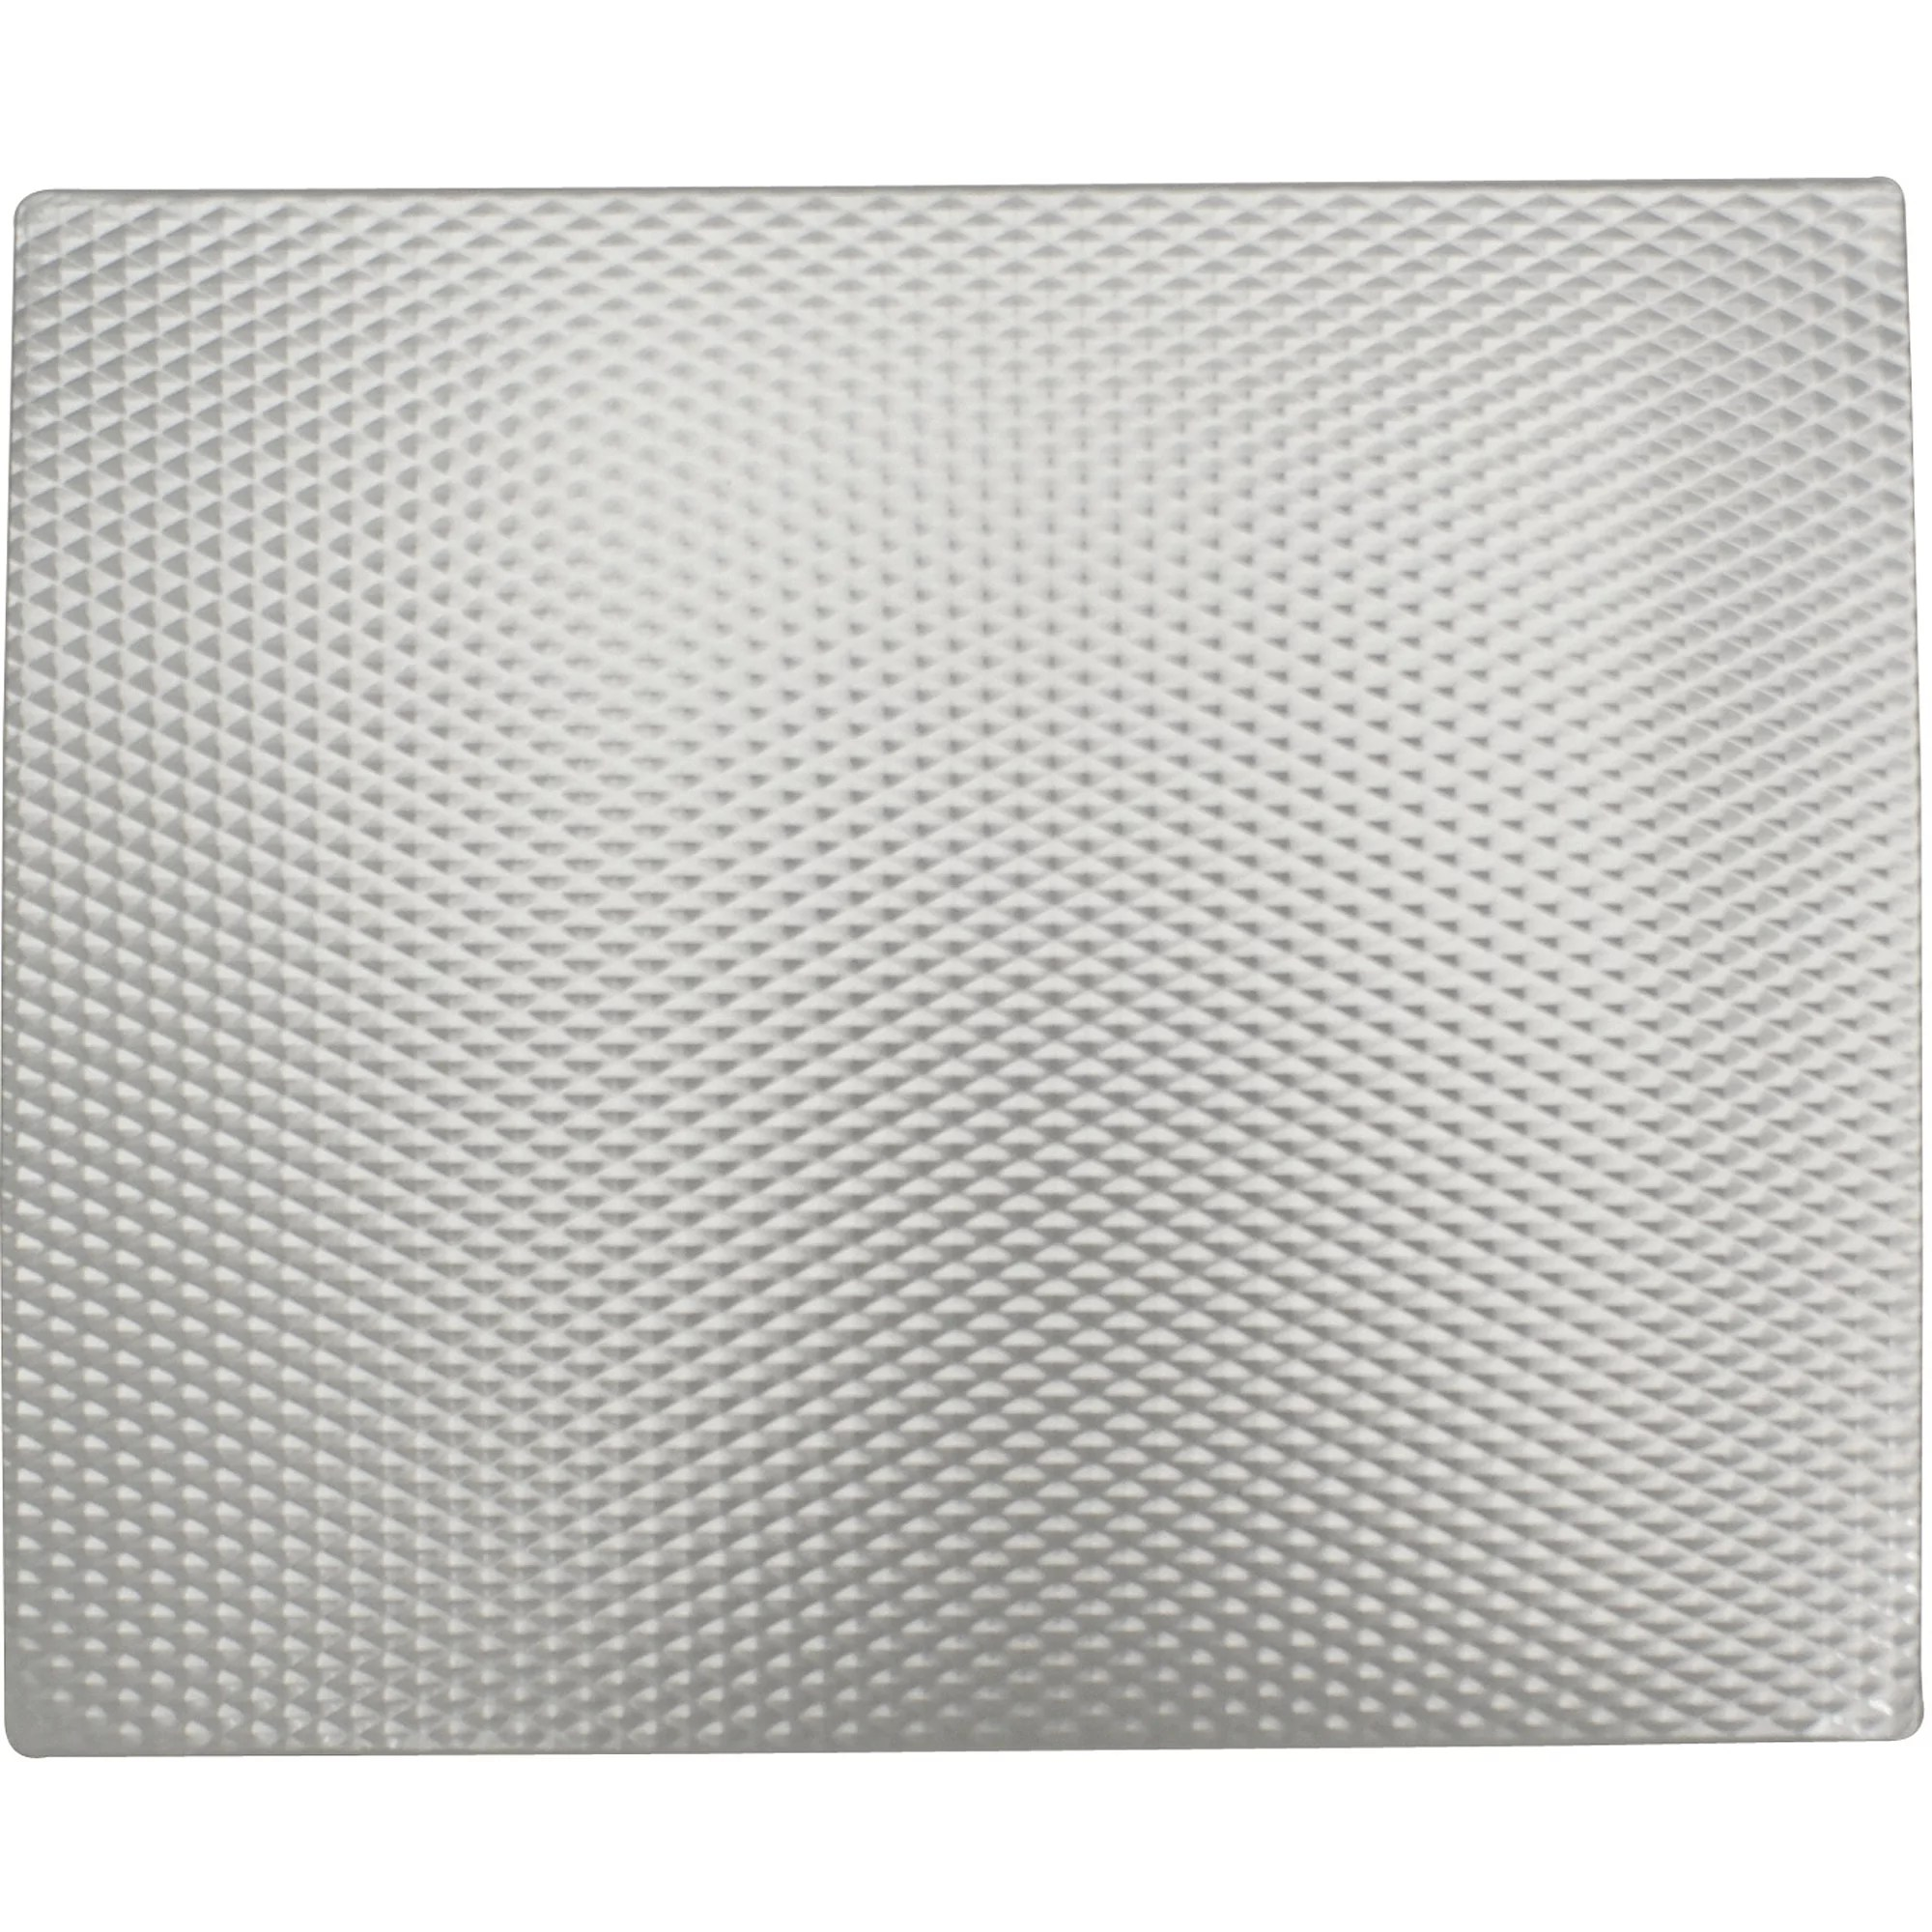 Sink Grids Farmhouse Countertop Protector Kitchen Countertop Protectors Backsplash Protector Kitchen No Grout Range Kleen 1 Piece Counter Mat